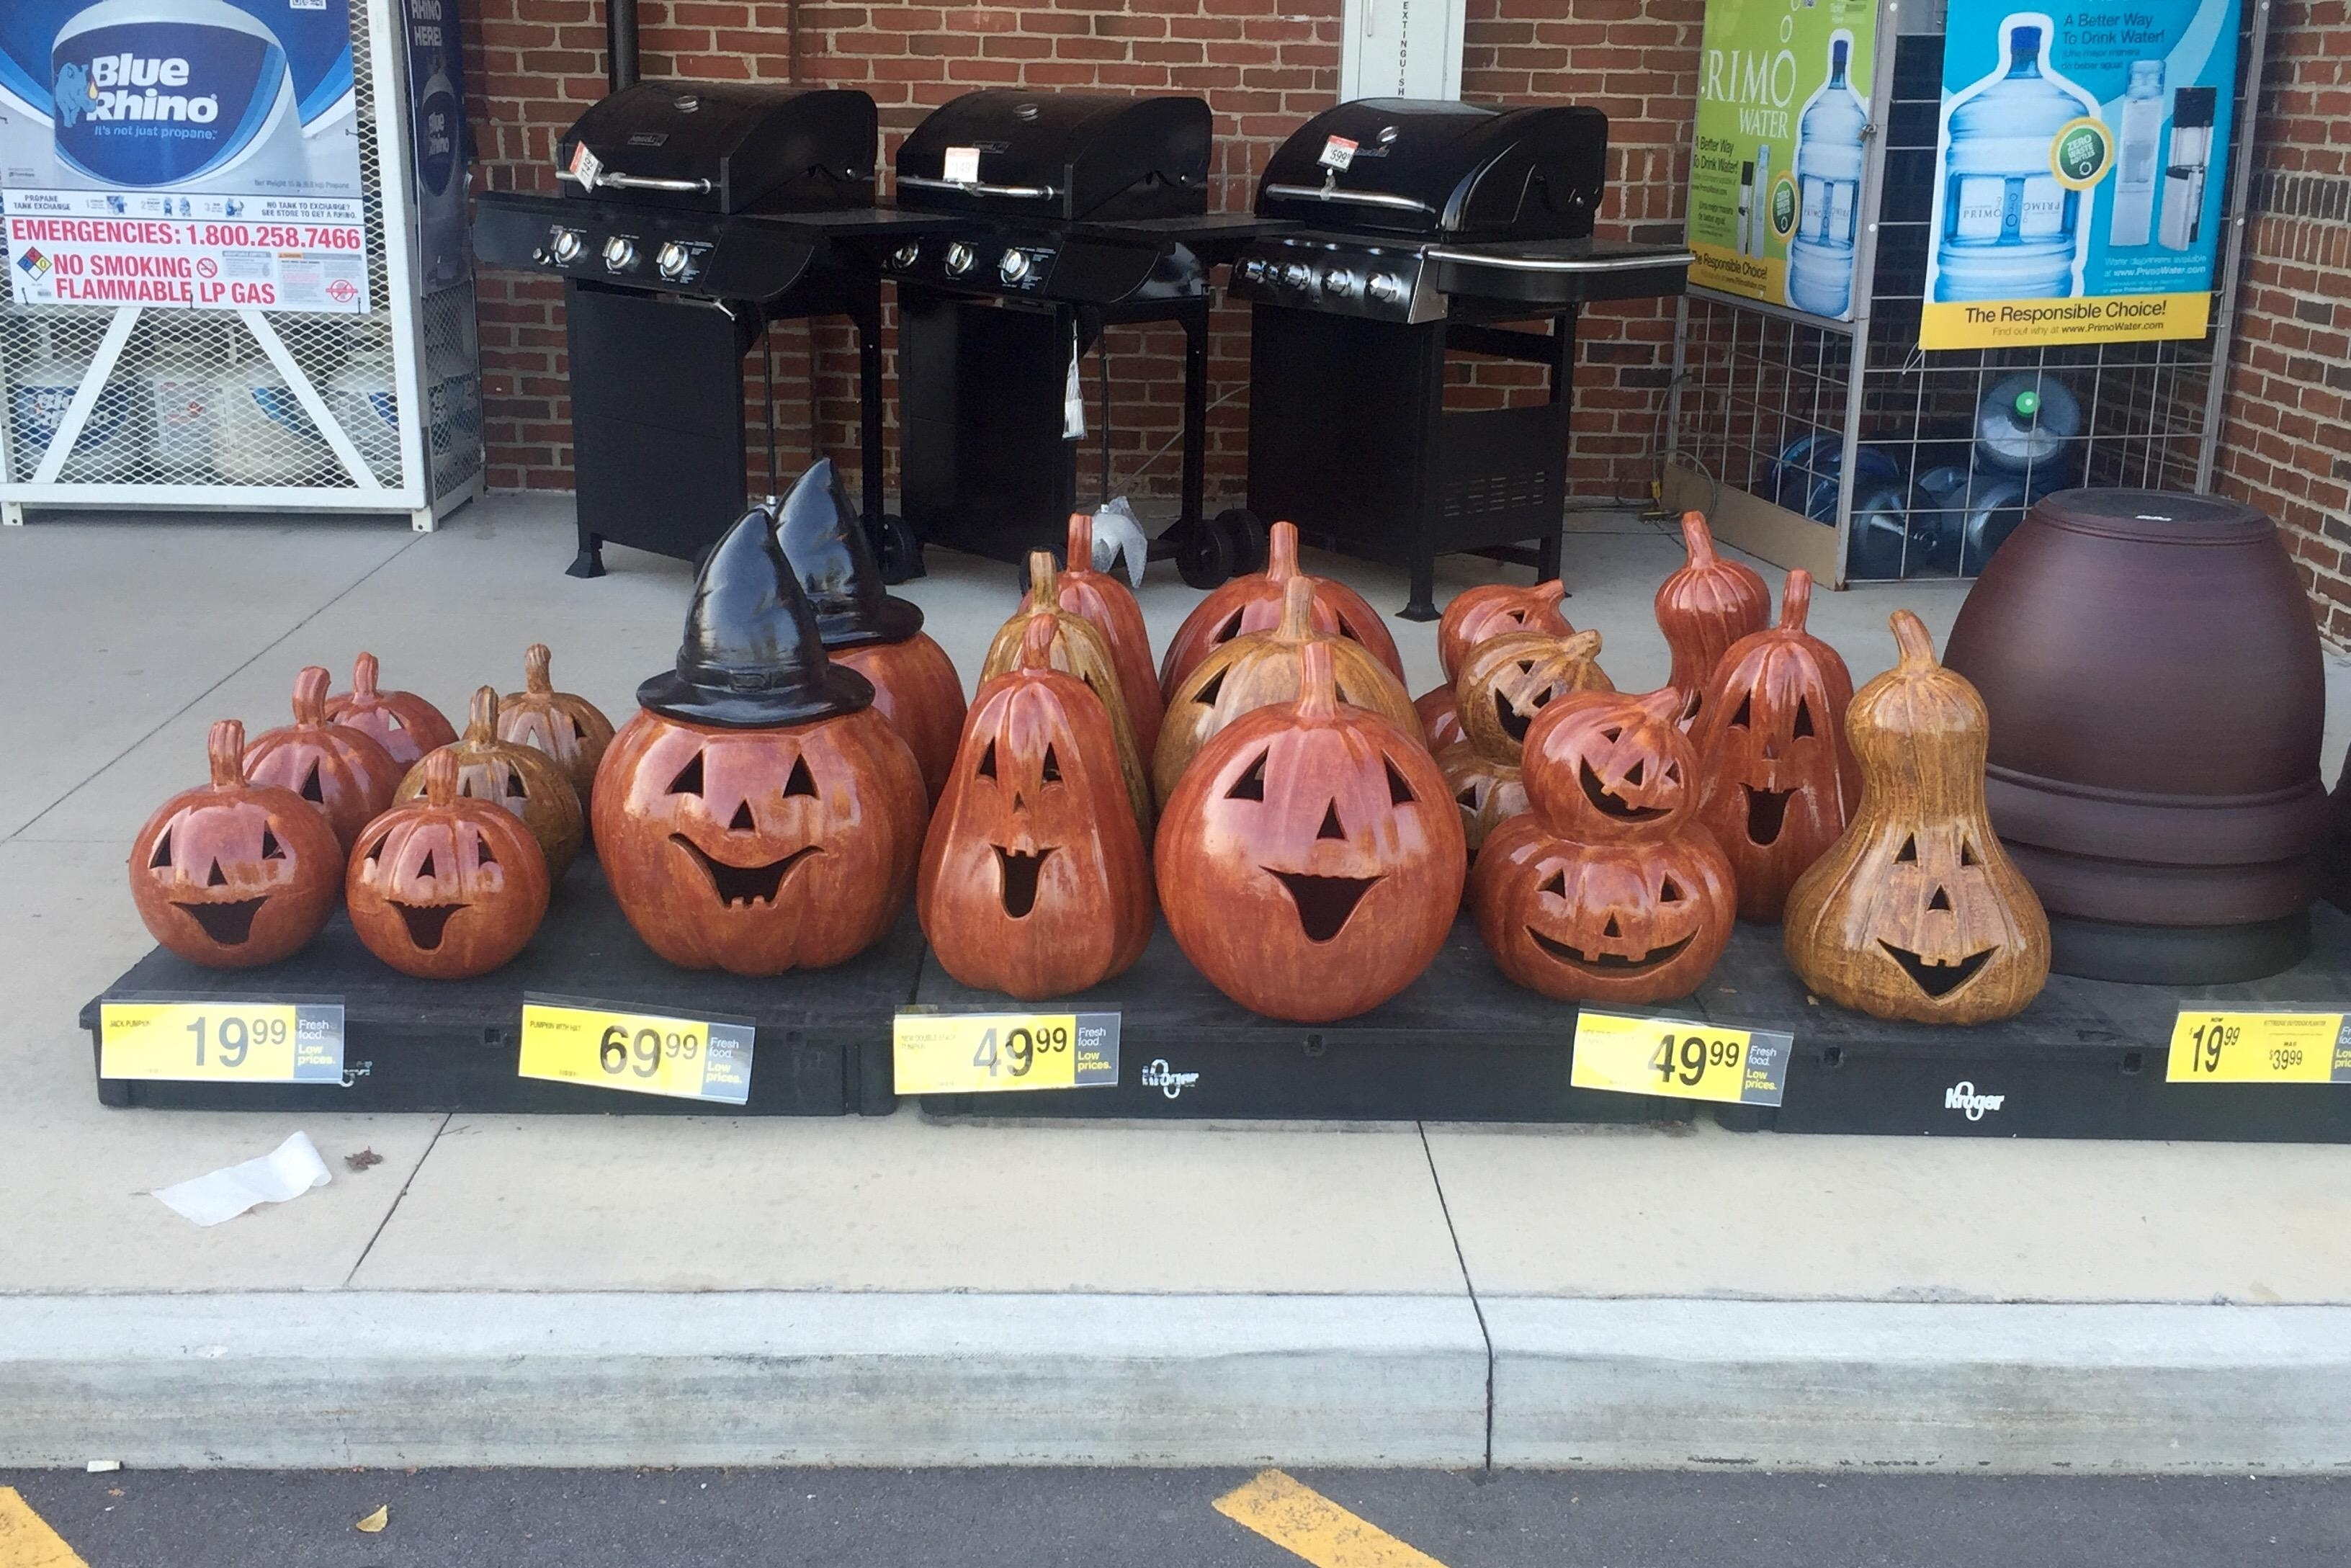 Spotted At Kroger This Morning! : Halloween Pertaining To Kroger Outdoor Lanterns (View 7 of 20)